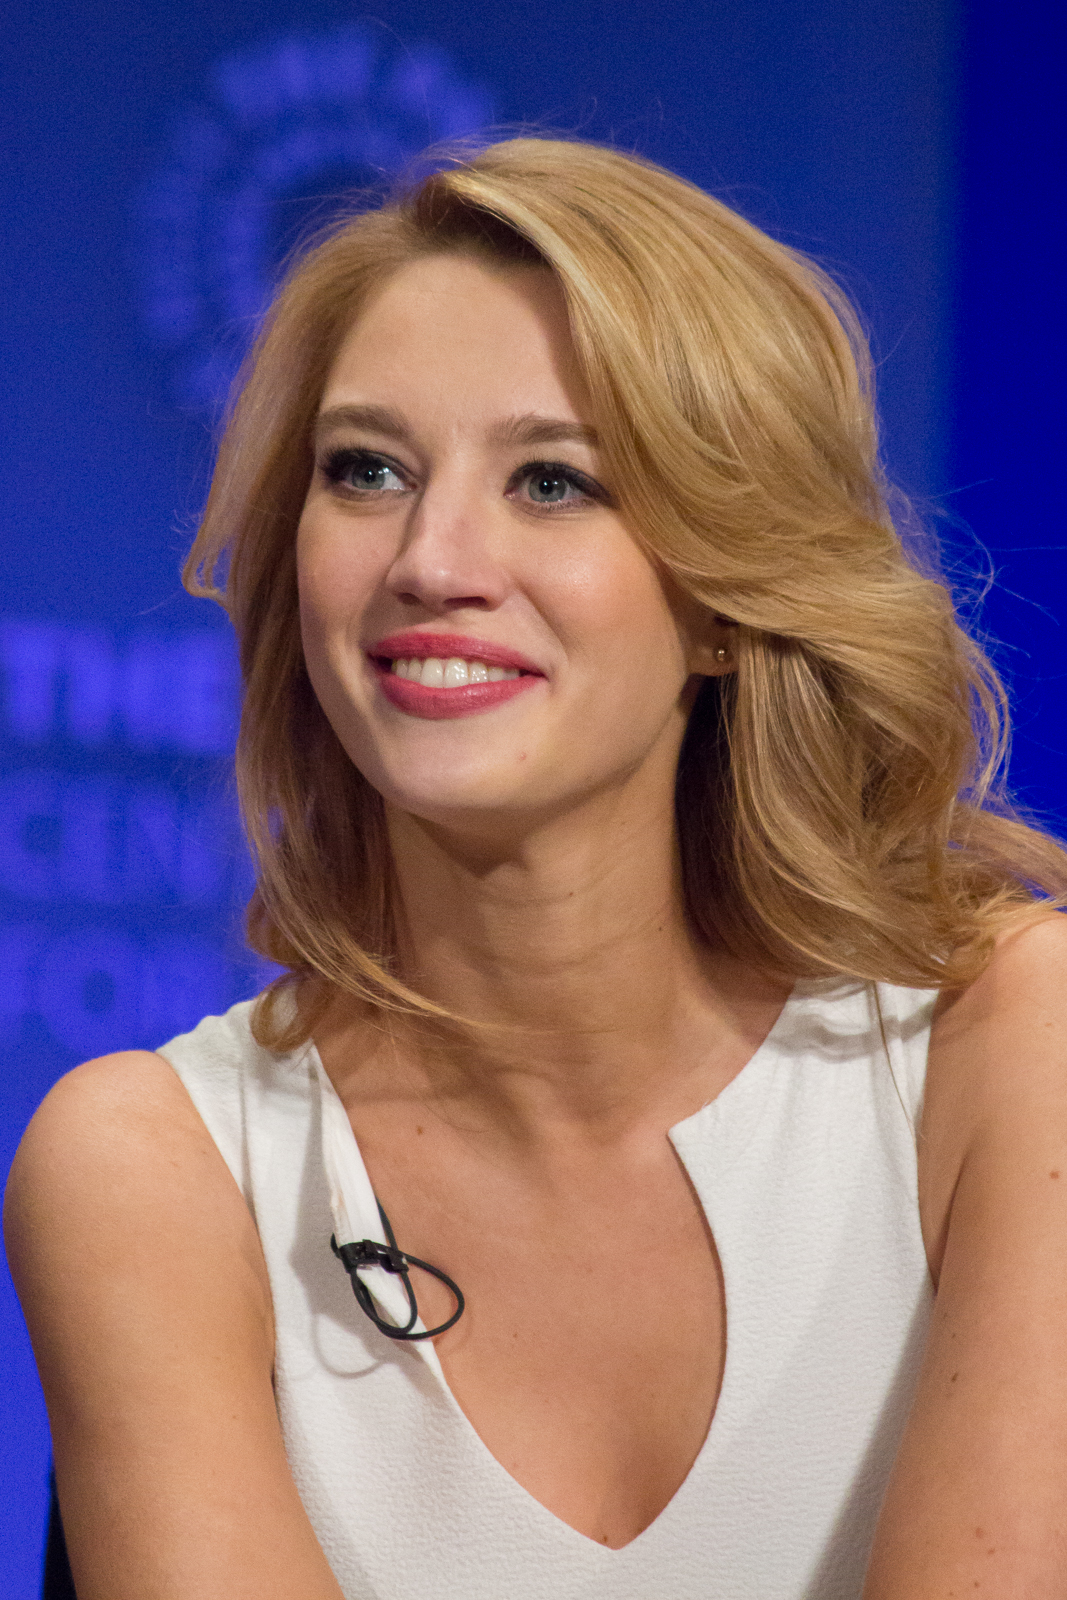 How tall is Yael Grobglas?